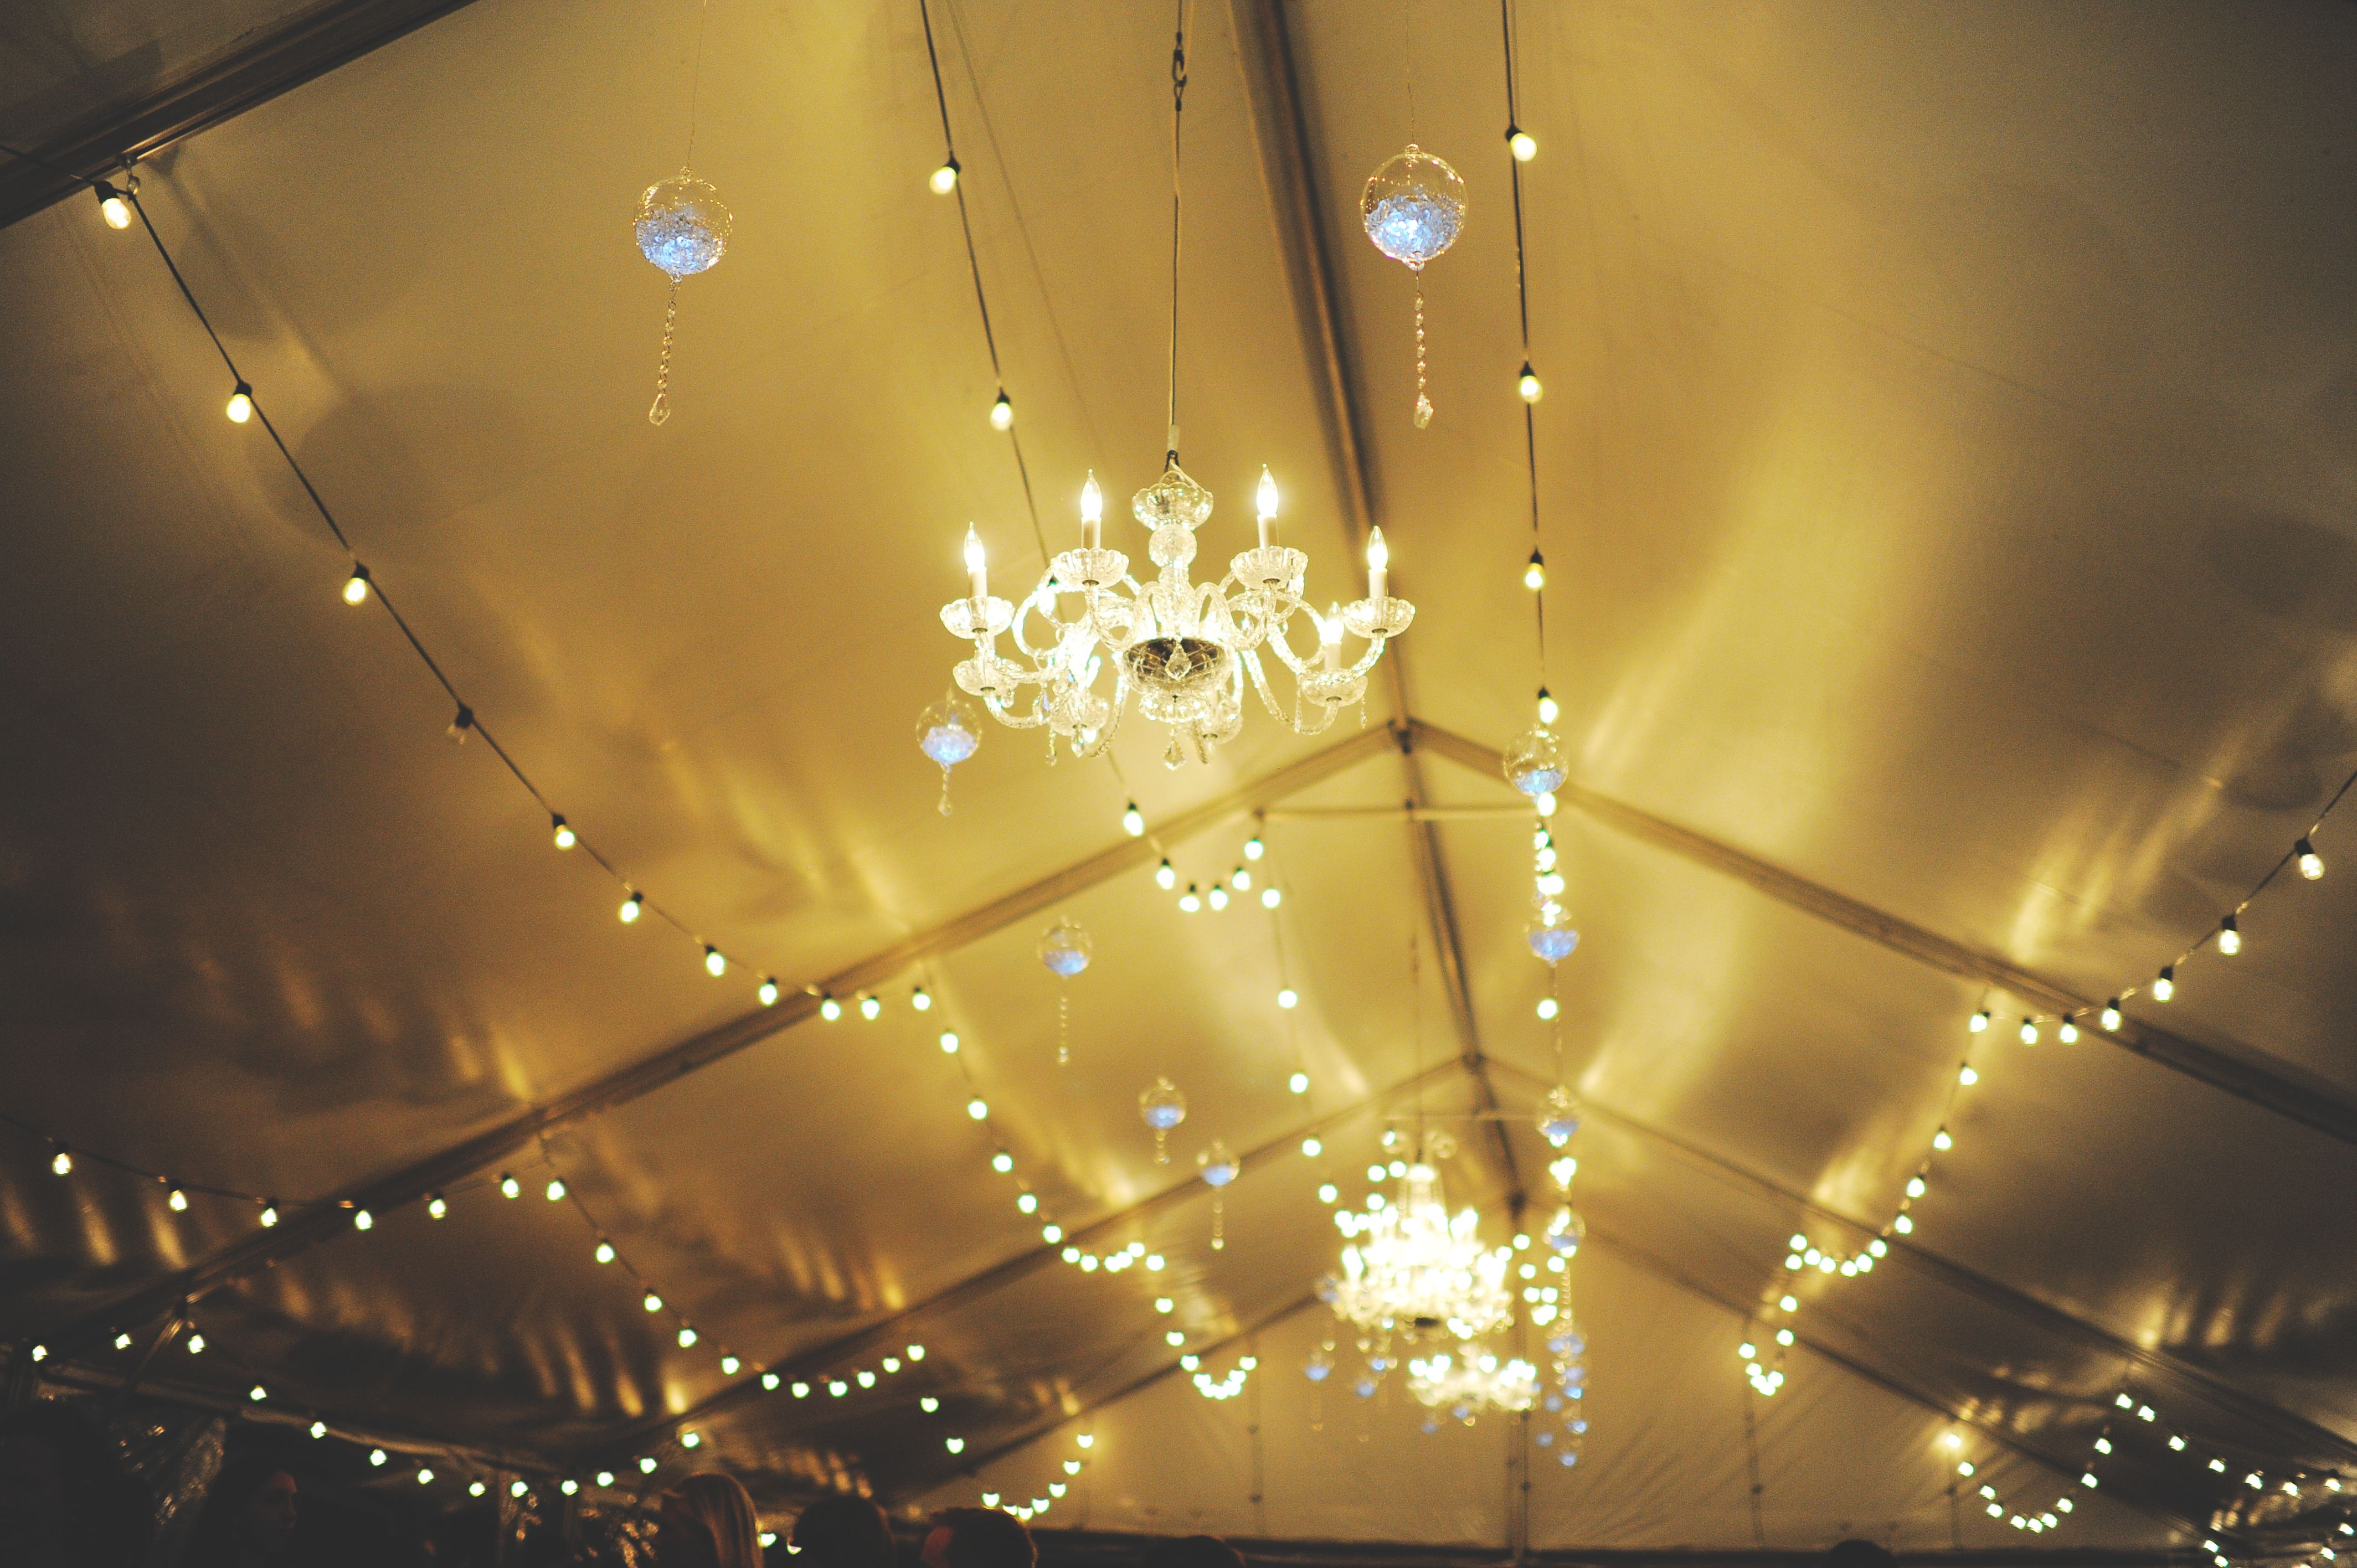 Beautiful Chandeliers By BEYOND Help Create That Extra Bling For A Tent Wedding Reception At Cross